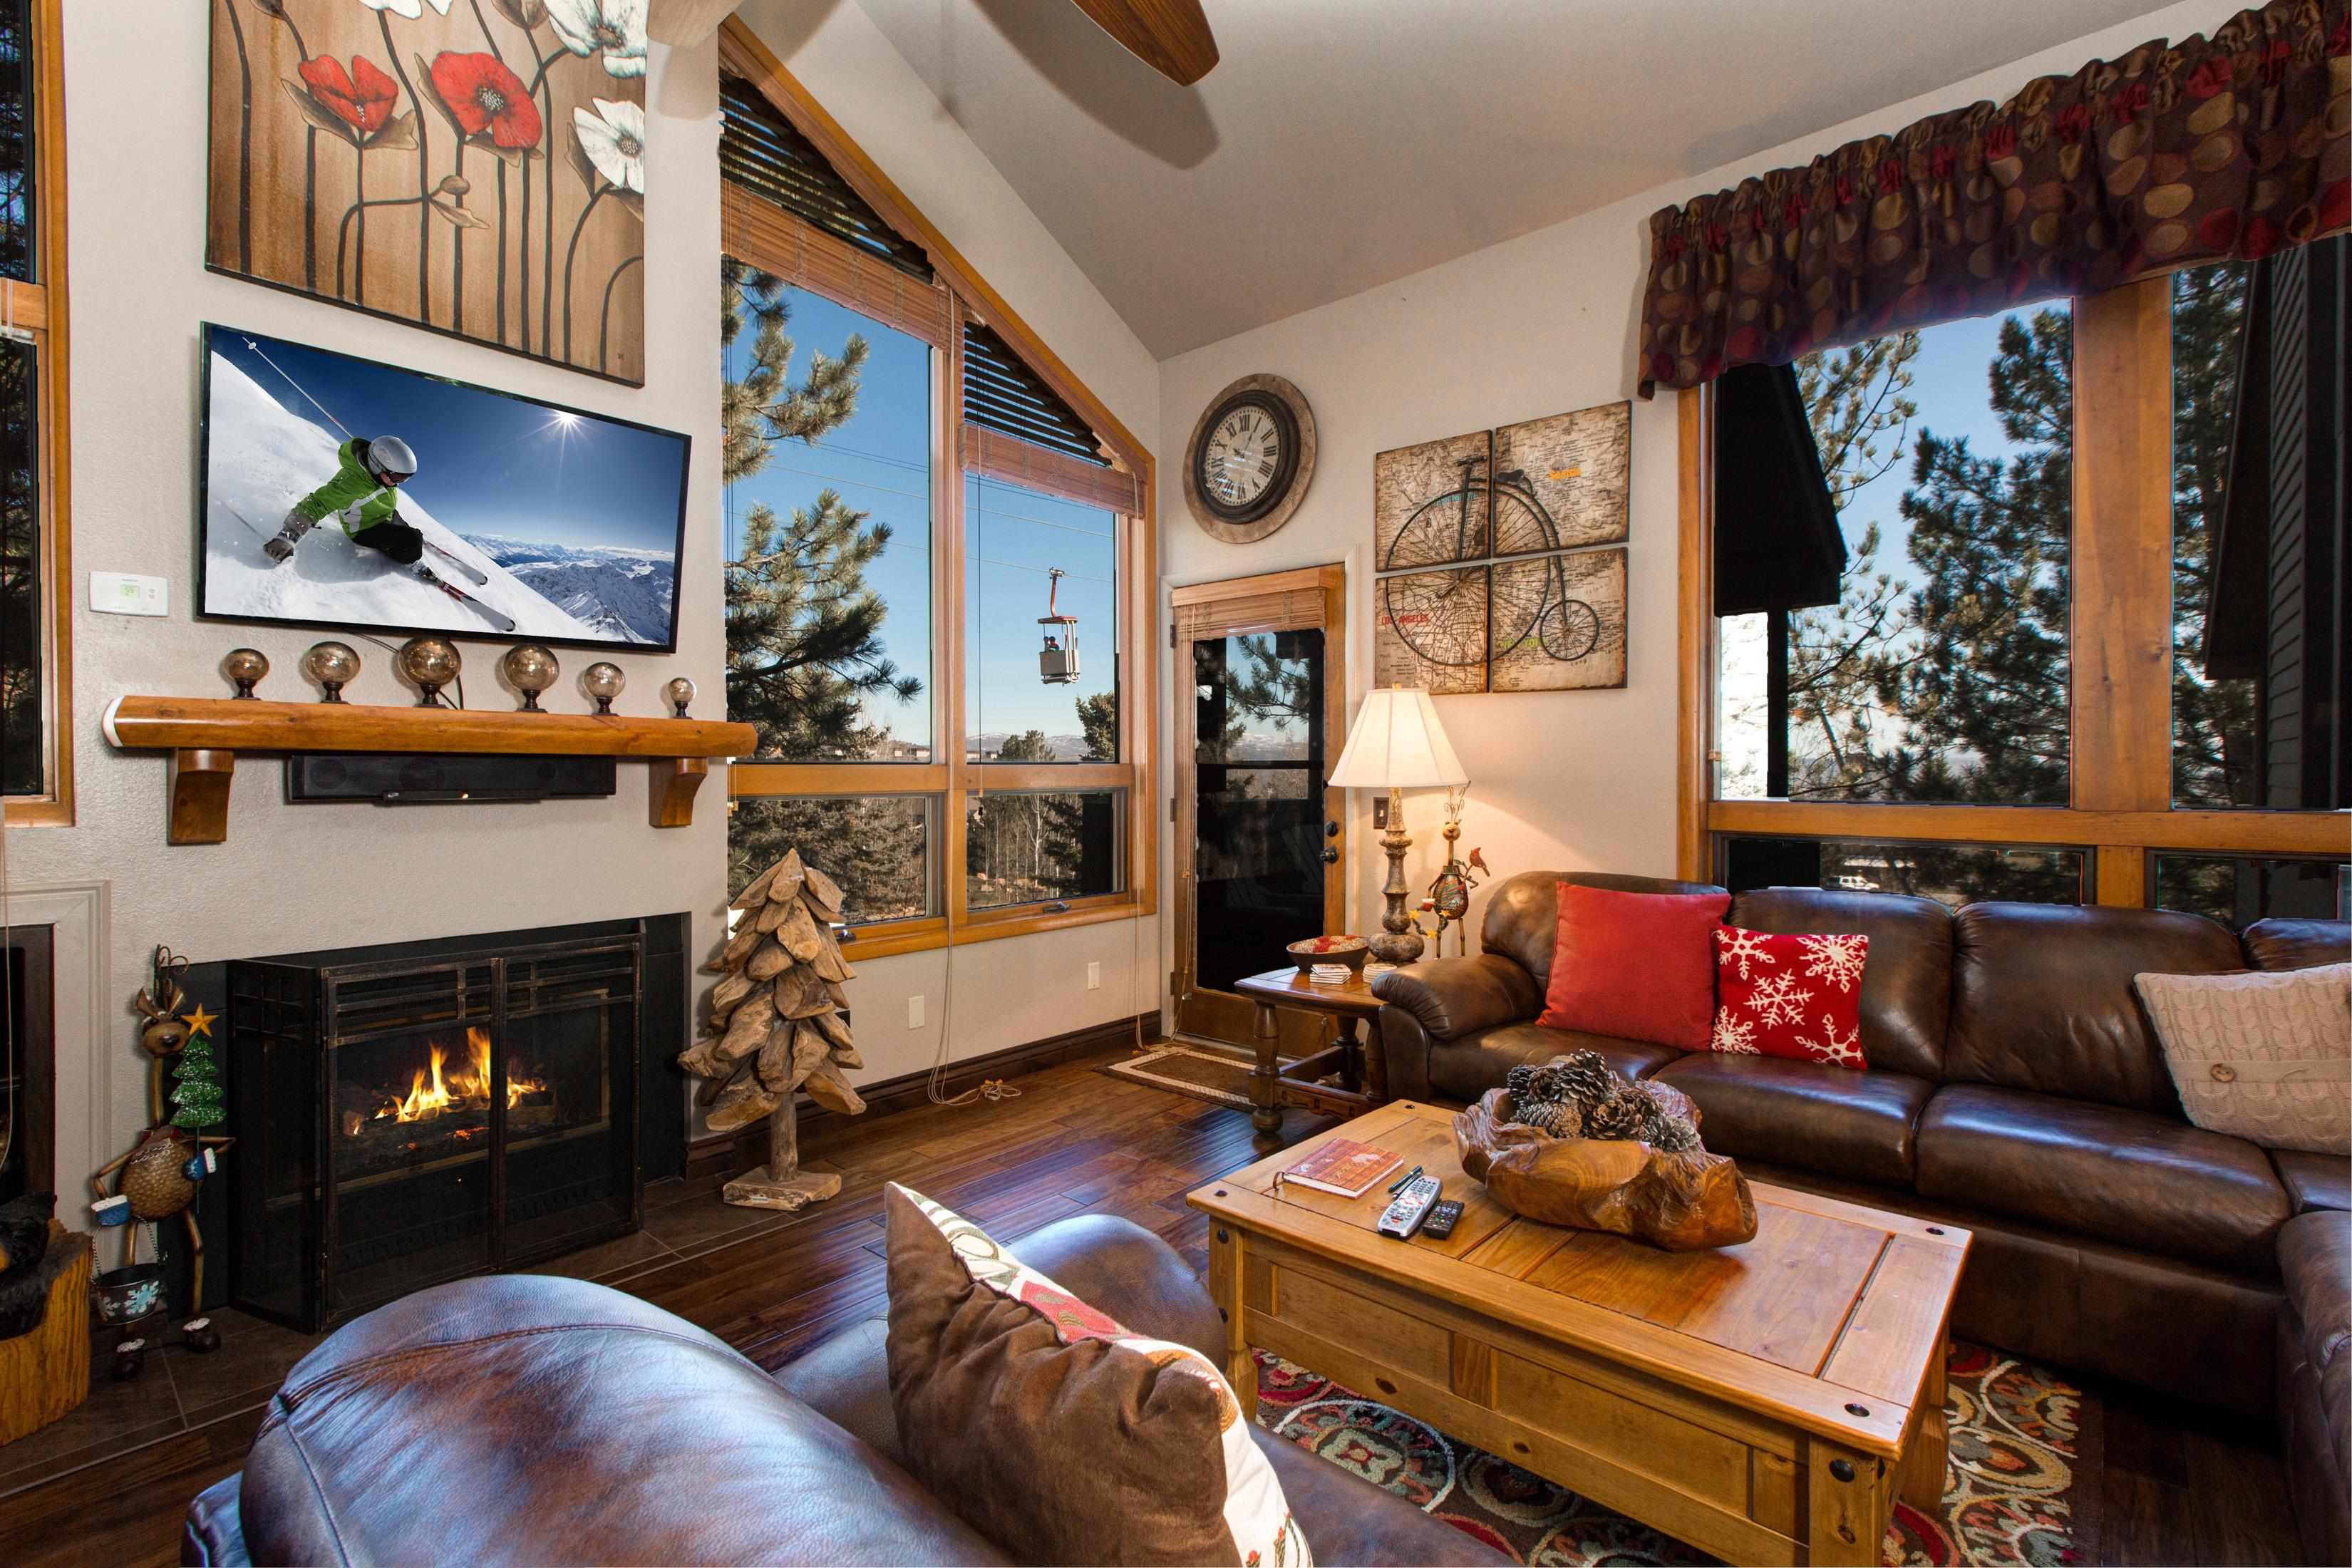 Welcome to Park City! Cozy and classic living area with a flat-screen TV and wooded views through large windows.